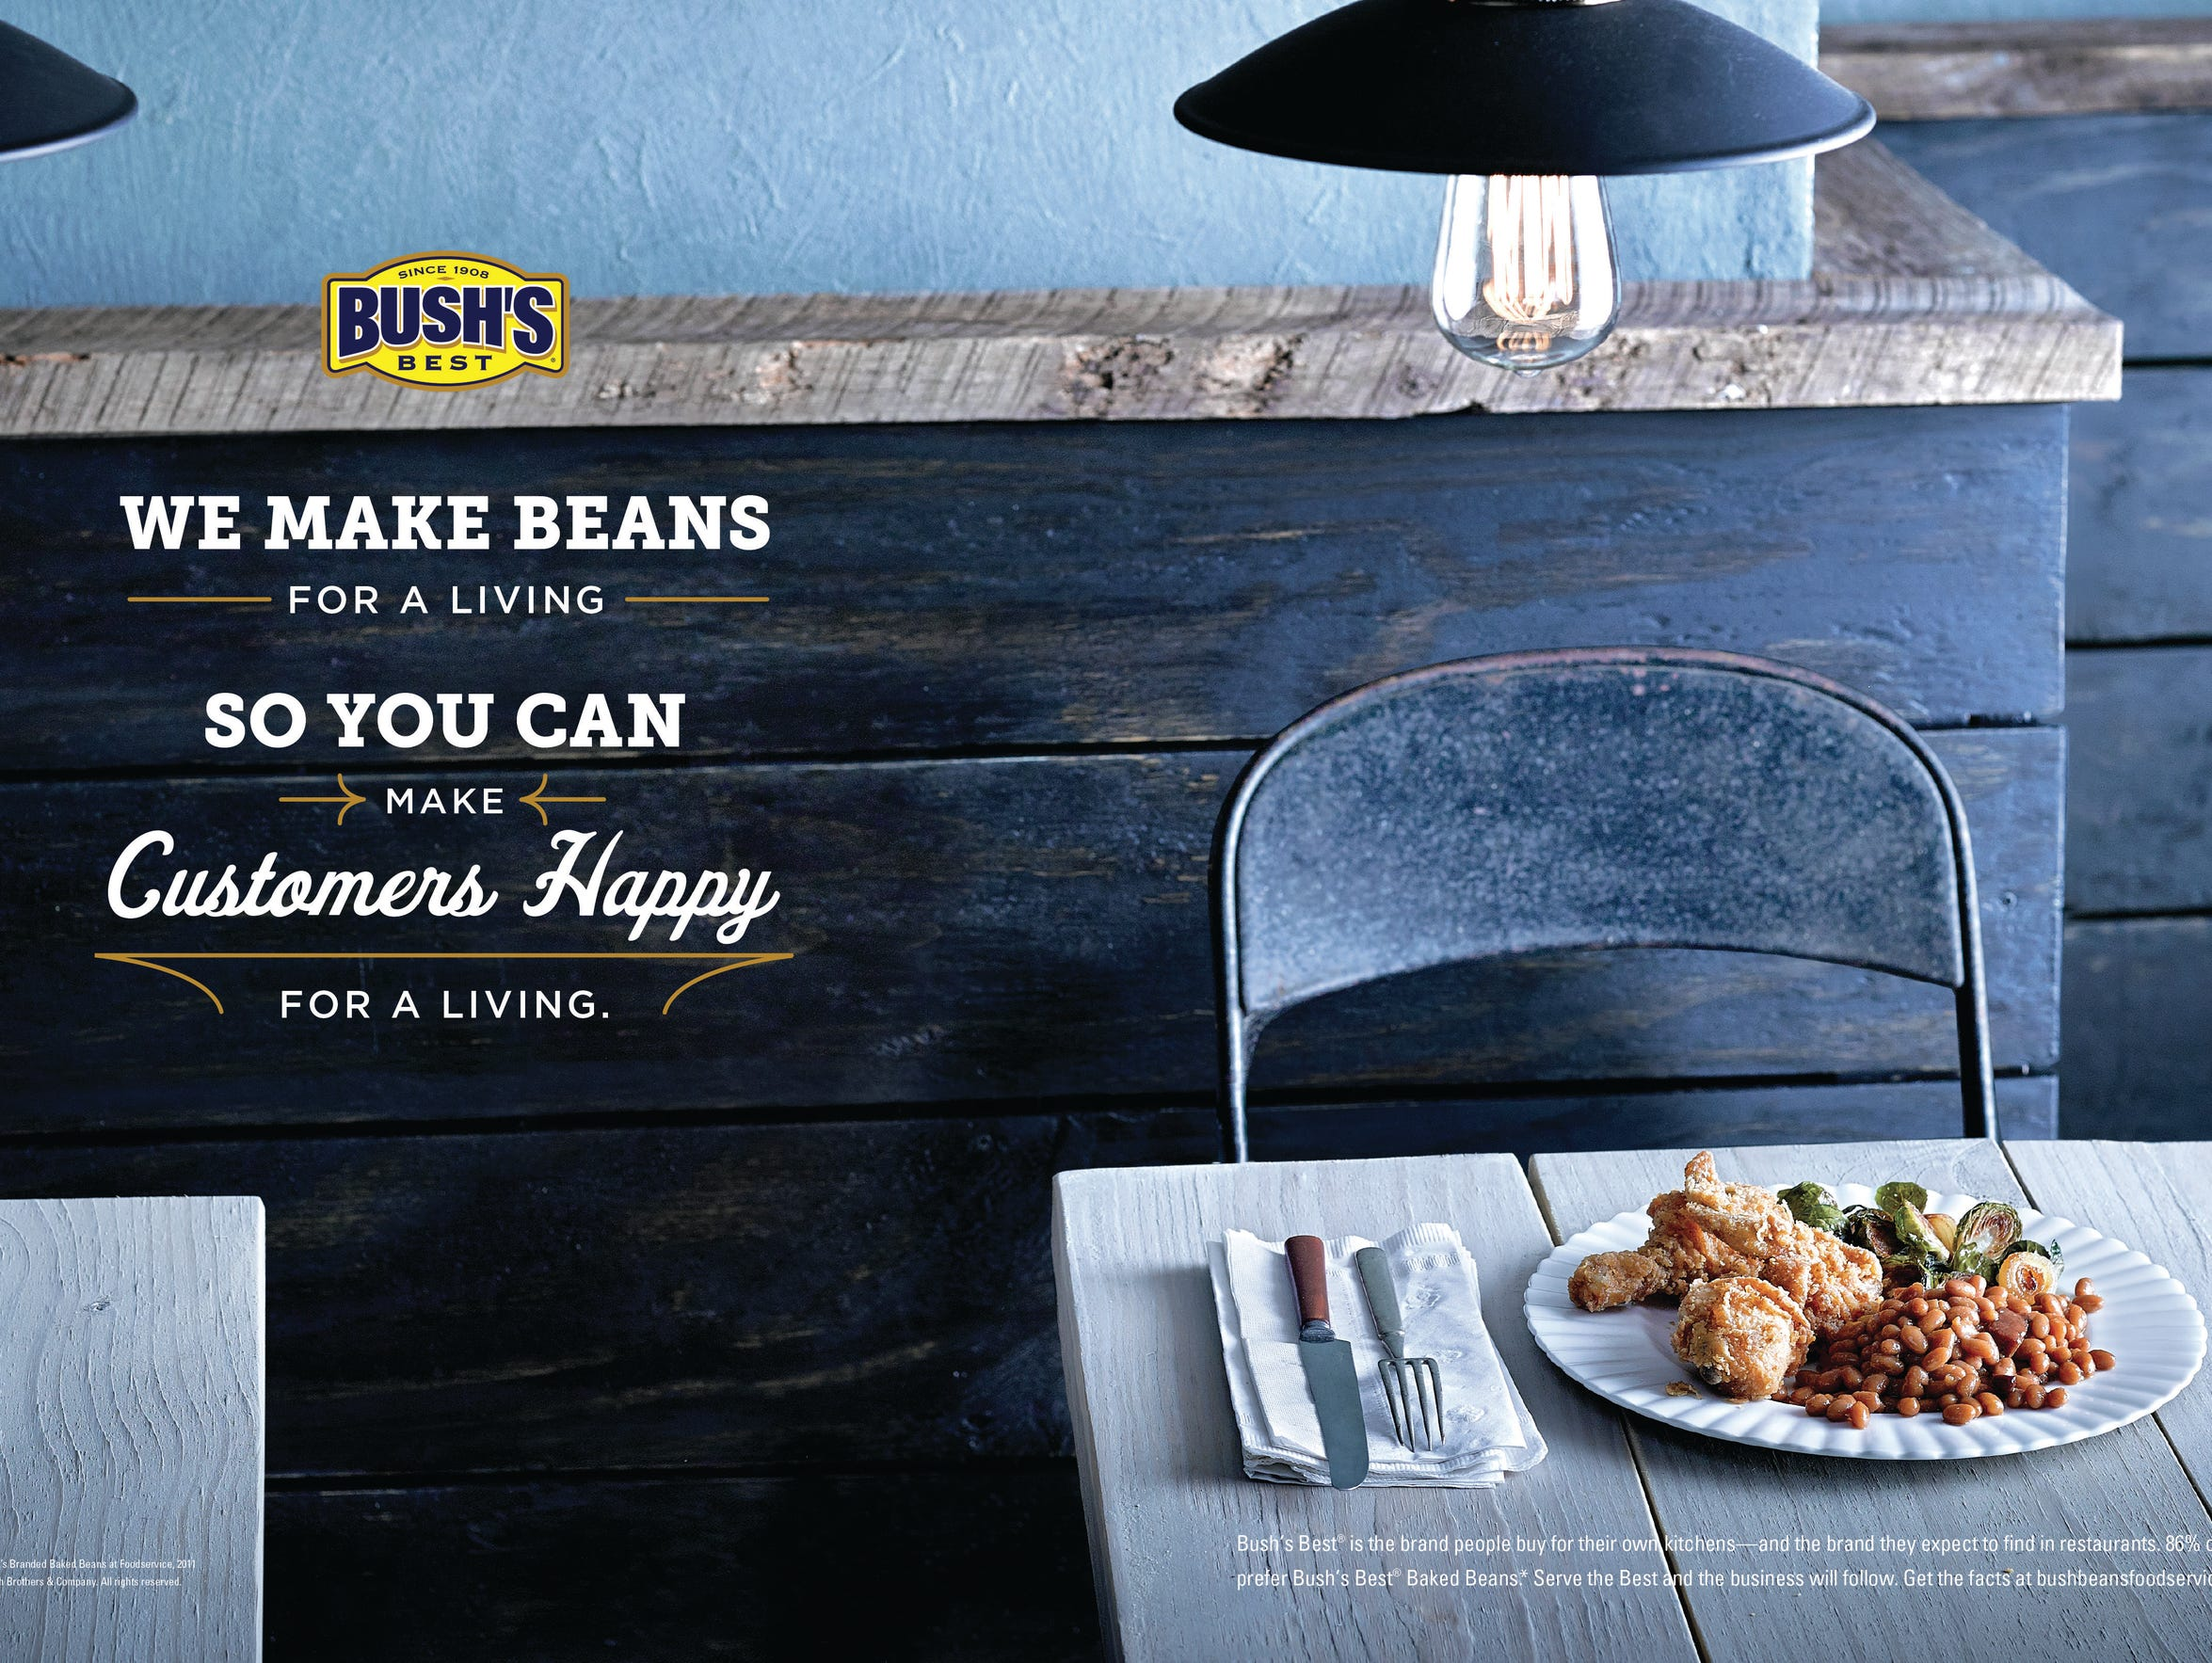 An advertisement for Bush's Best Beans created by Marlin,